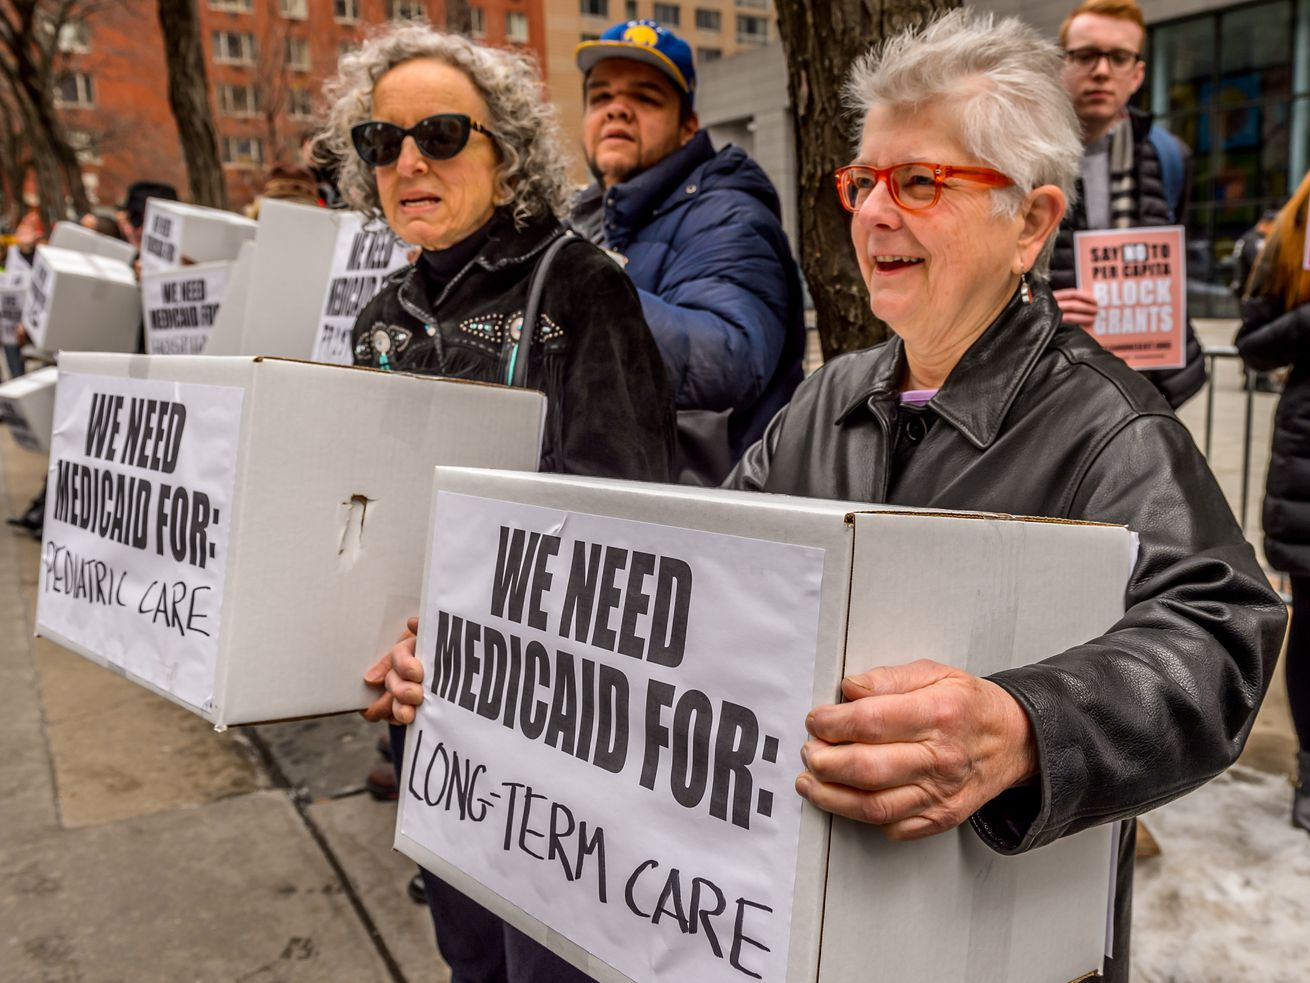 Demonstrators in New York in 2017, protesting against Republican Medicaid proposals.